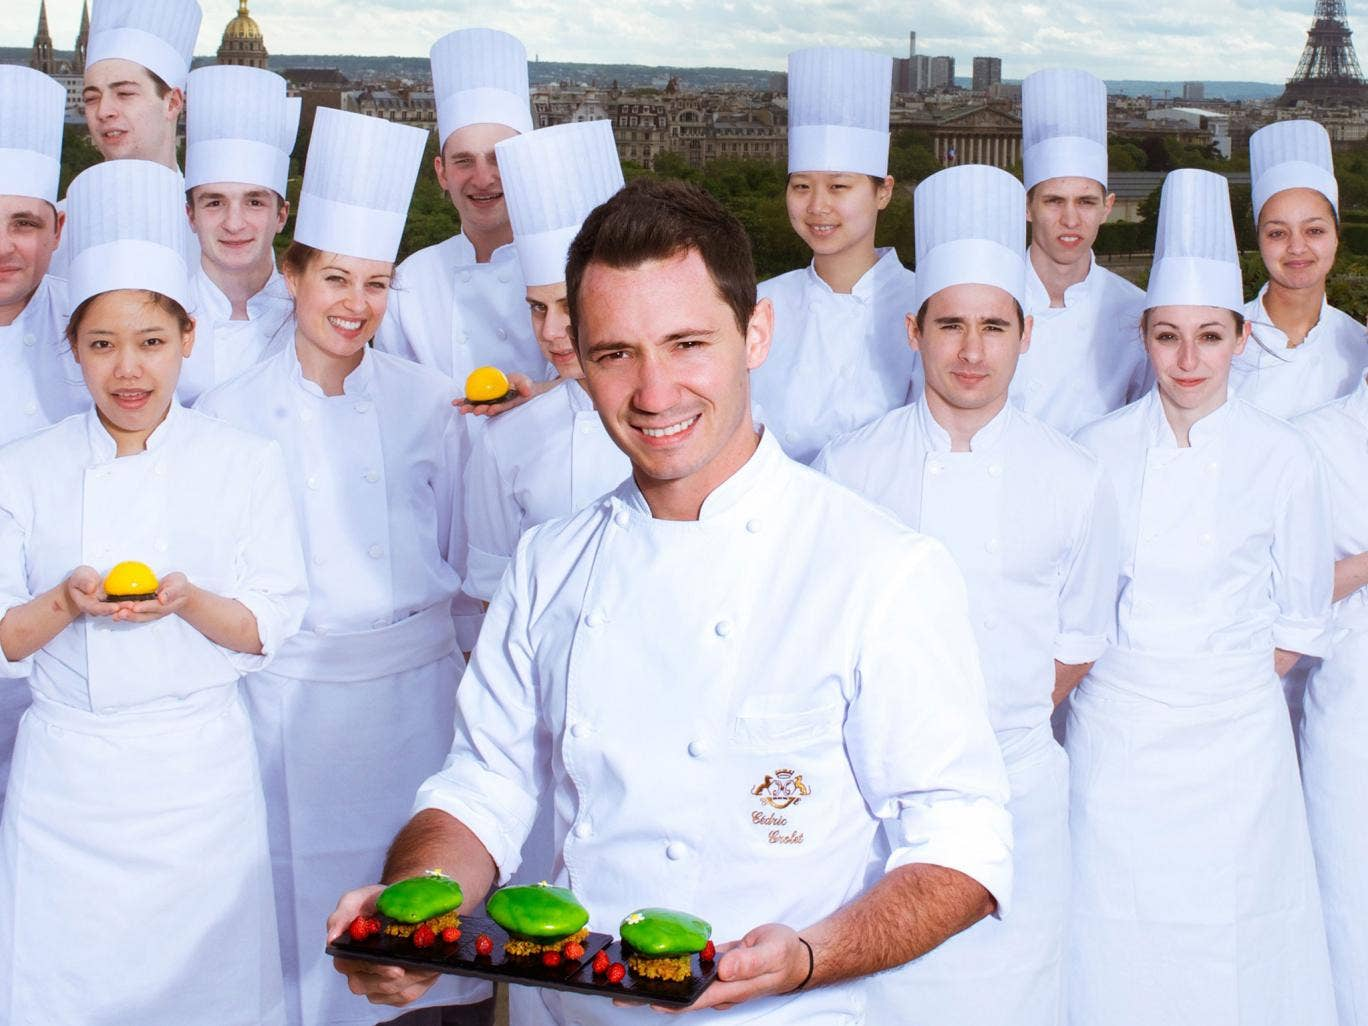 Just desserts: Cedric Grolet and his team